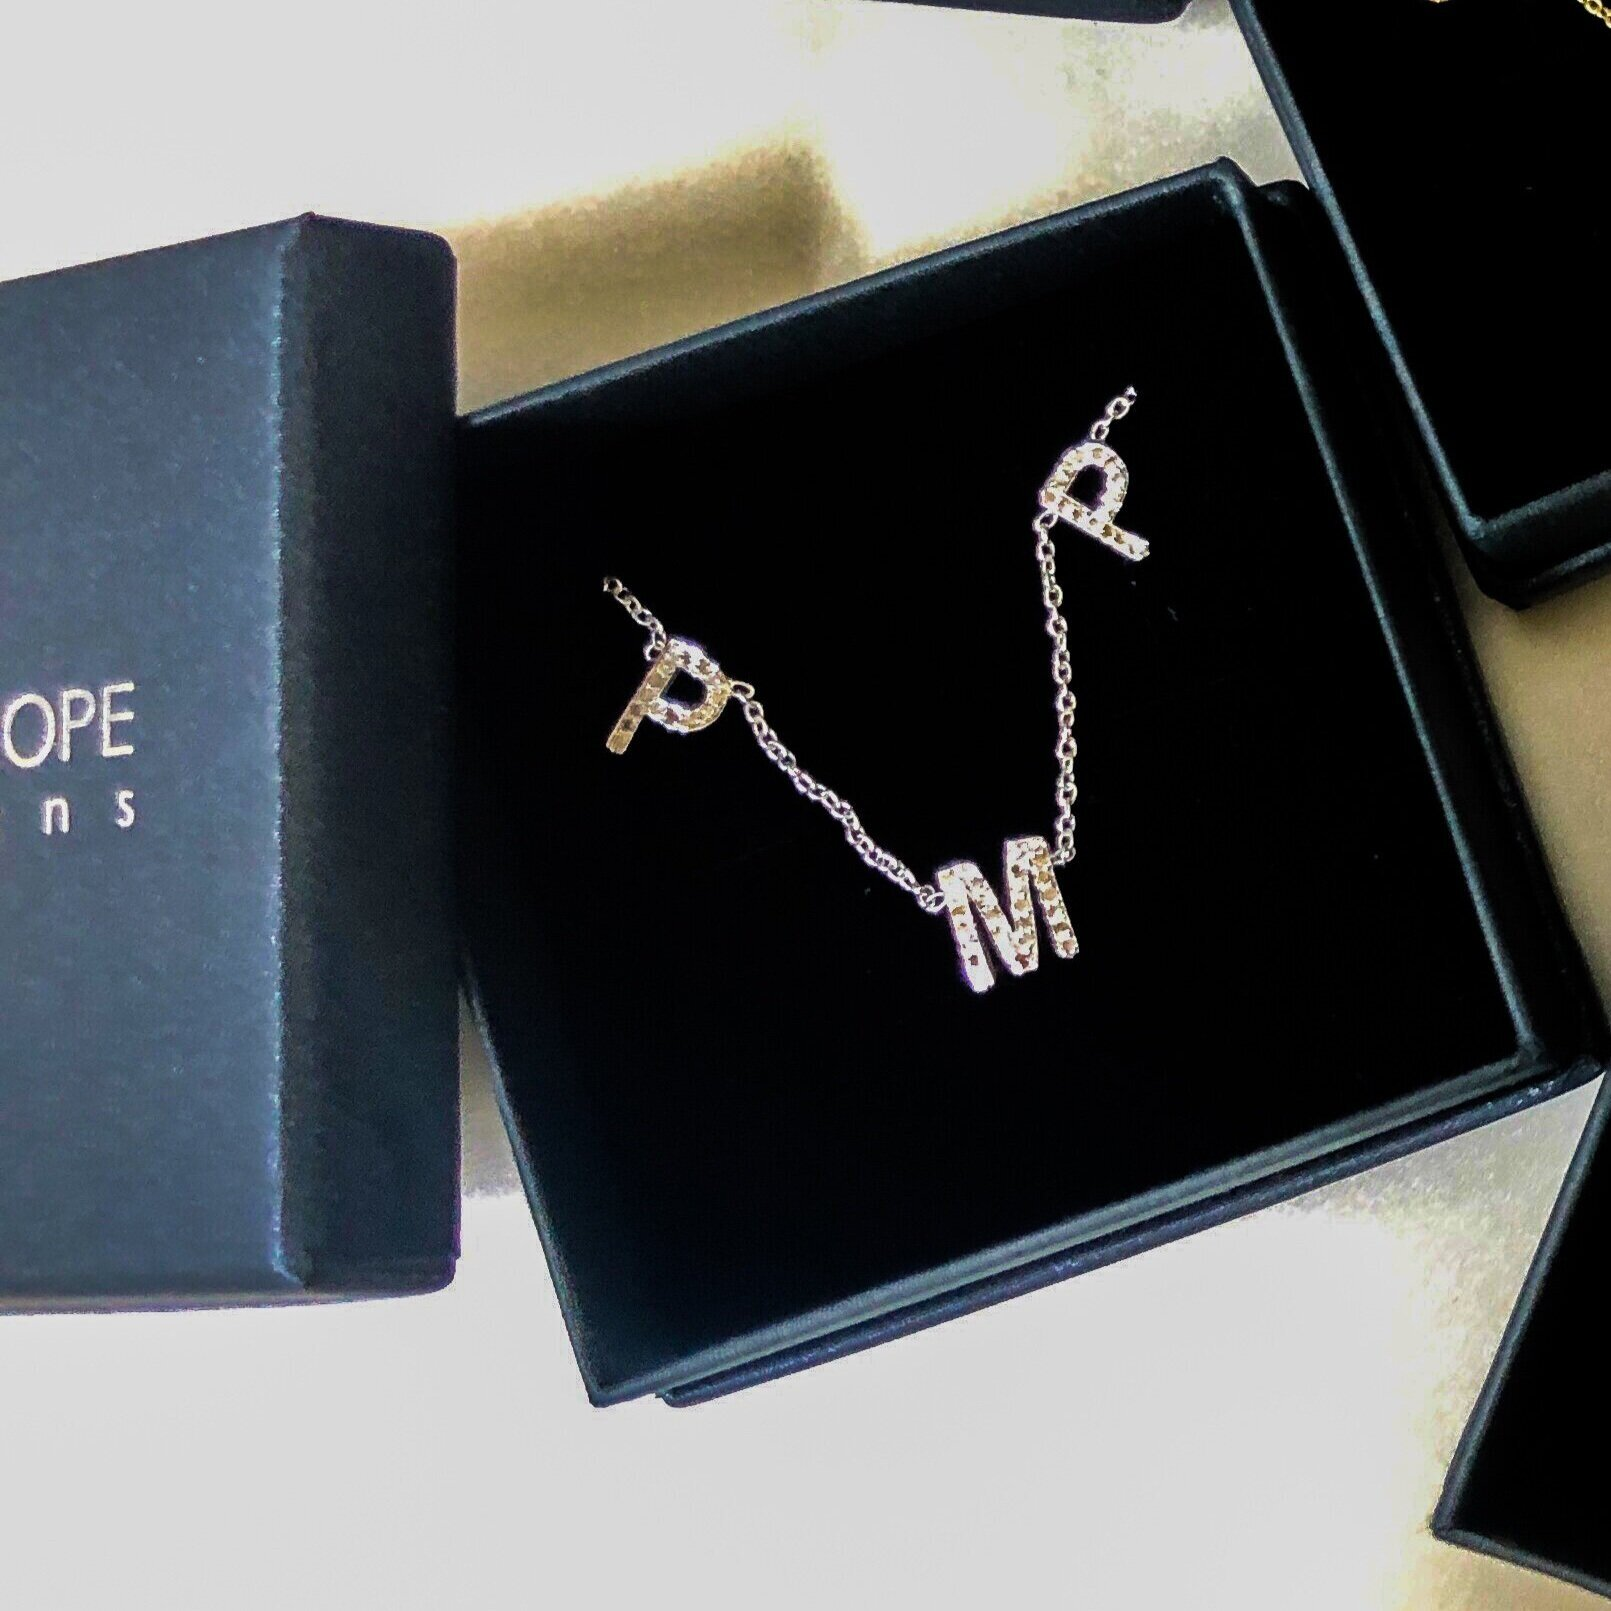 The best gift Kara has given recently: One of her initial necklaces to her friend Paige